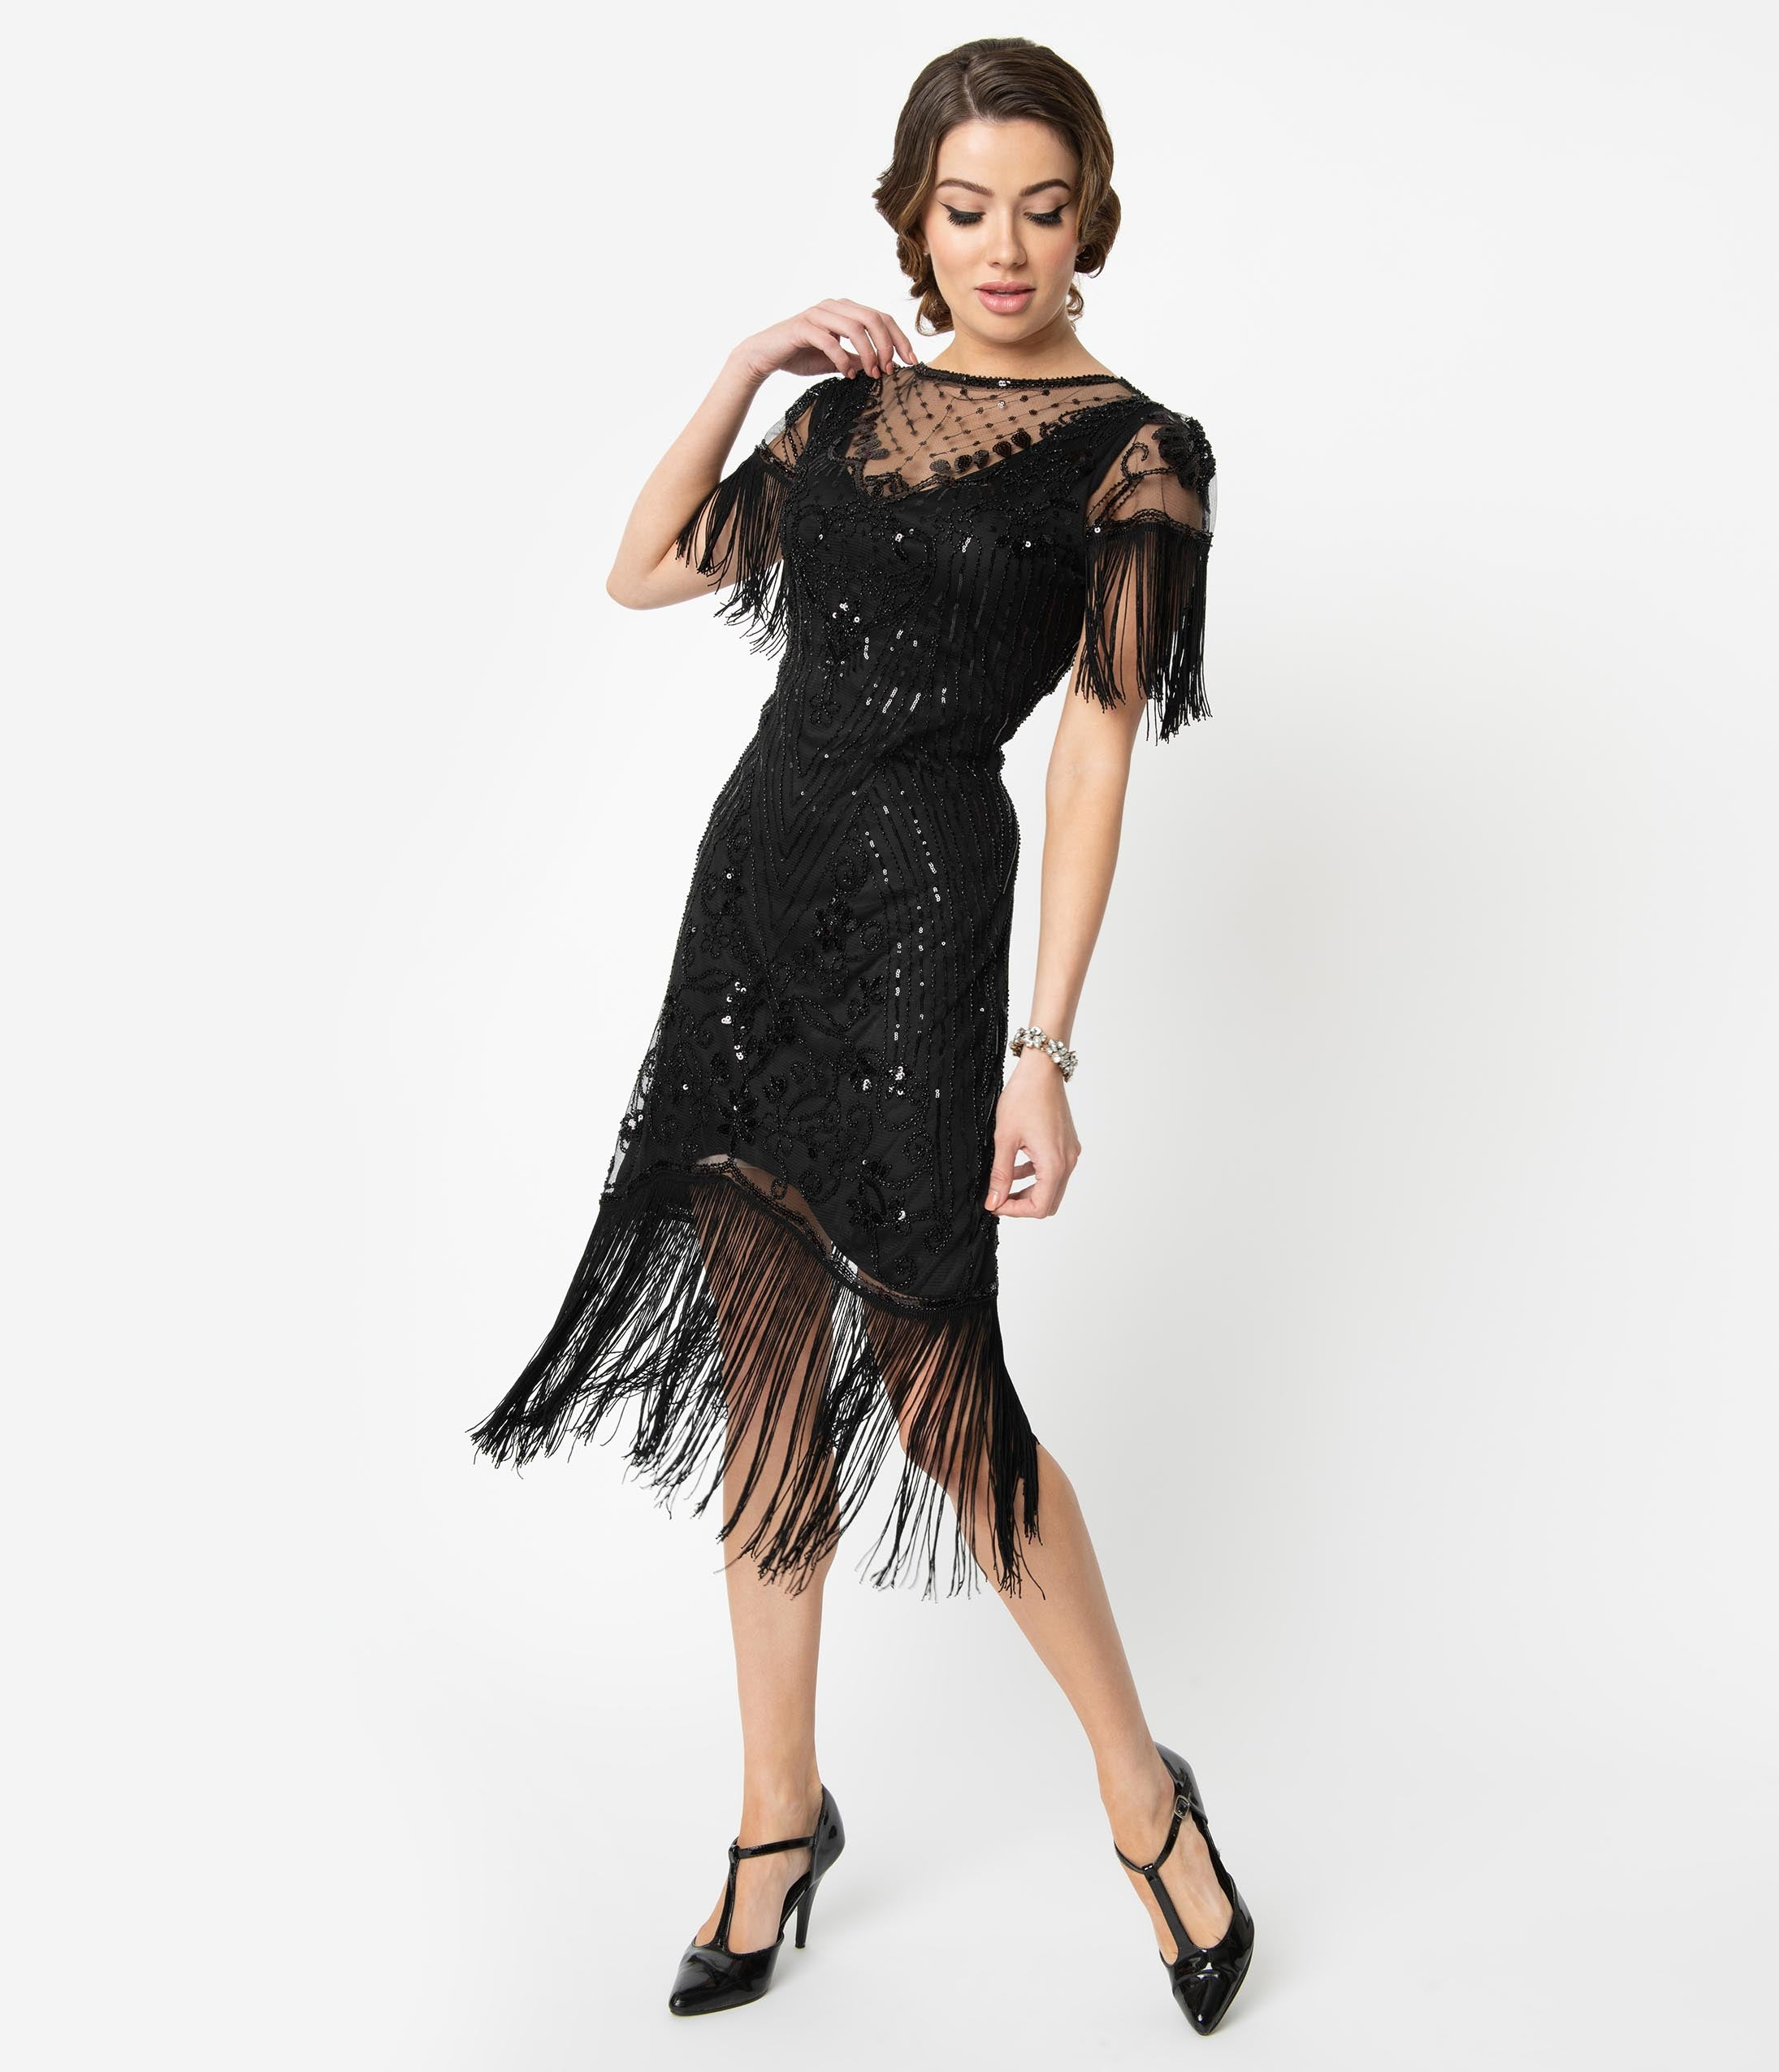 1920s Fashion & Clothing | Roaring 20s Attire Unique Vintage 1920S Black Beaded Fringe Sleeve Nadine Flapper Dress $78.00 AT vintagedancer.com